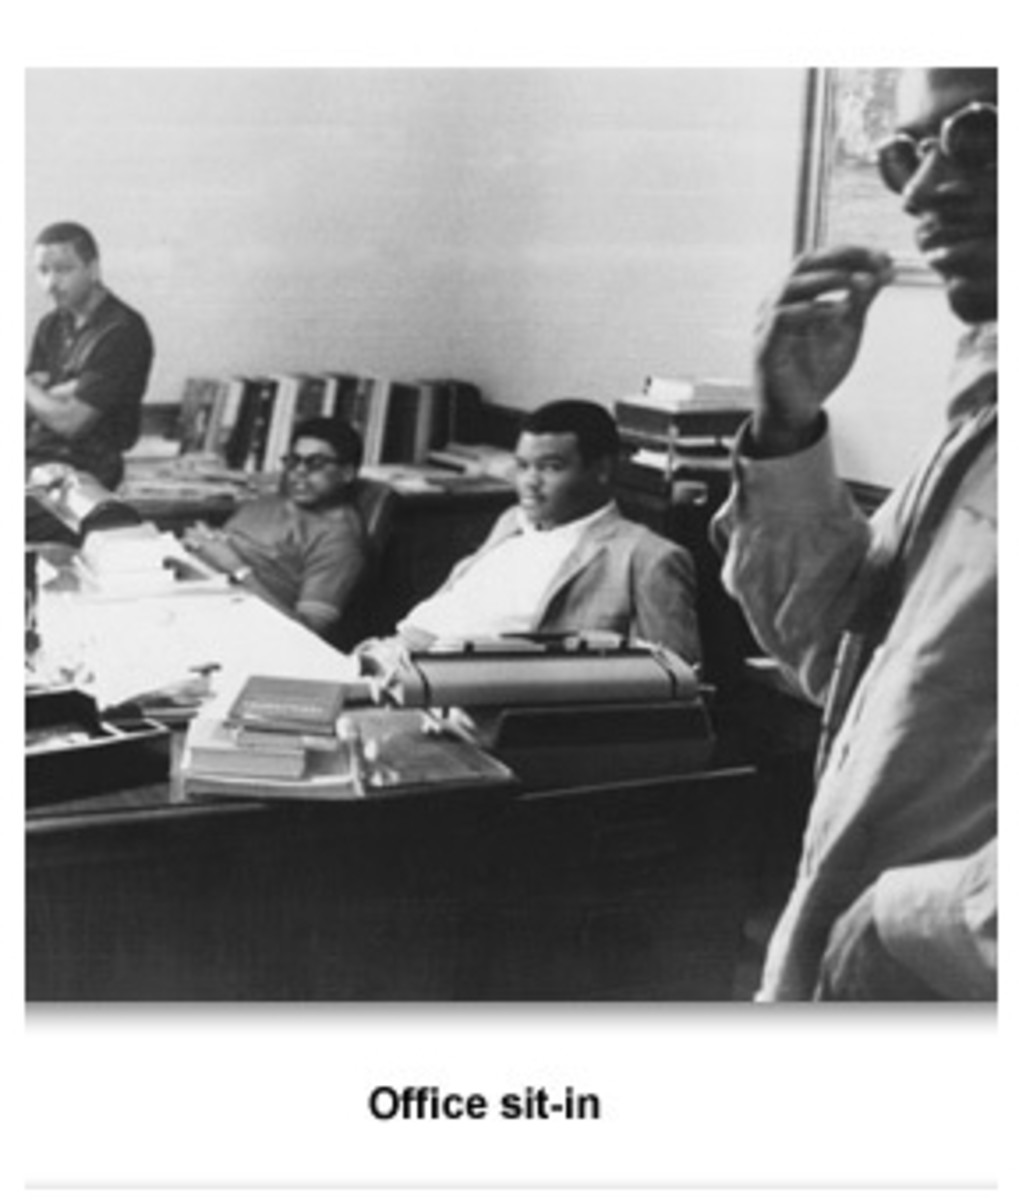 On April 28, 1969, more than 100 black and white students were arrested after a sit-in that took place in the office of President C.C. Humphreys of Memphis State University.